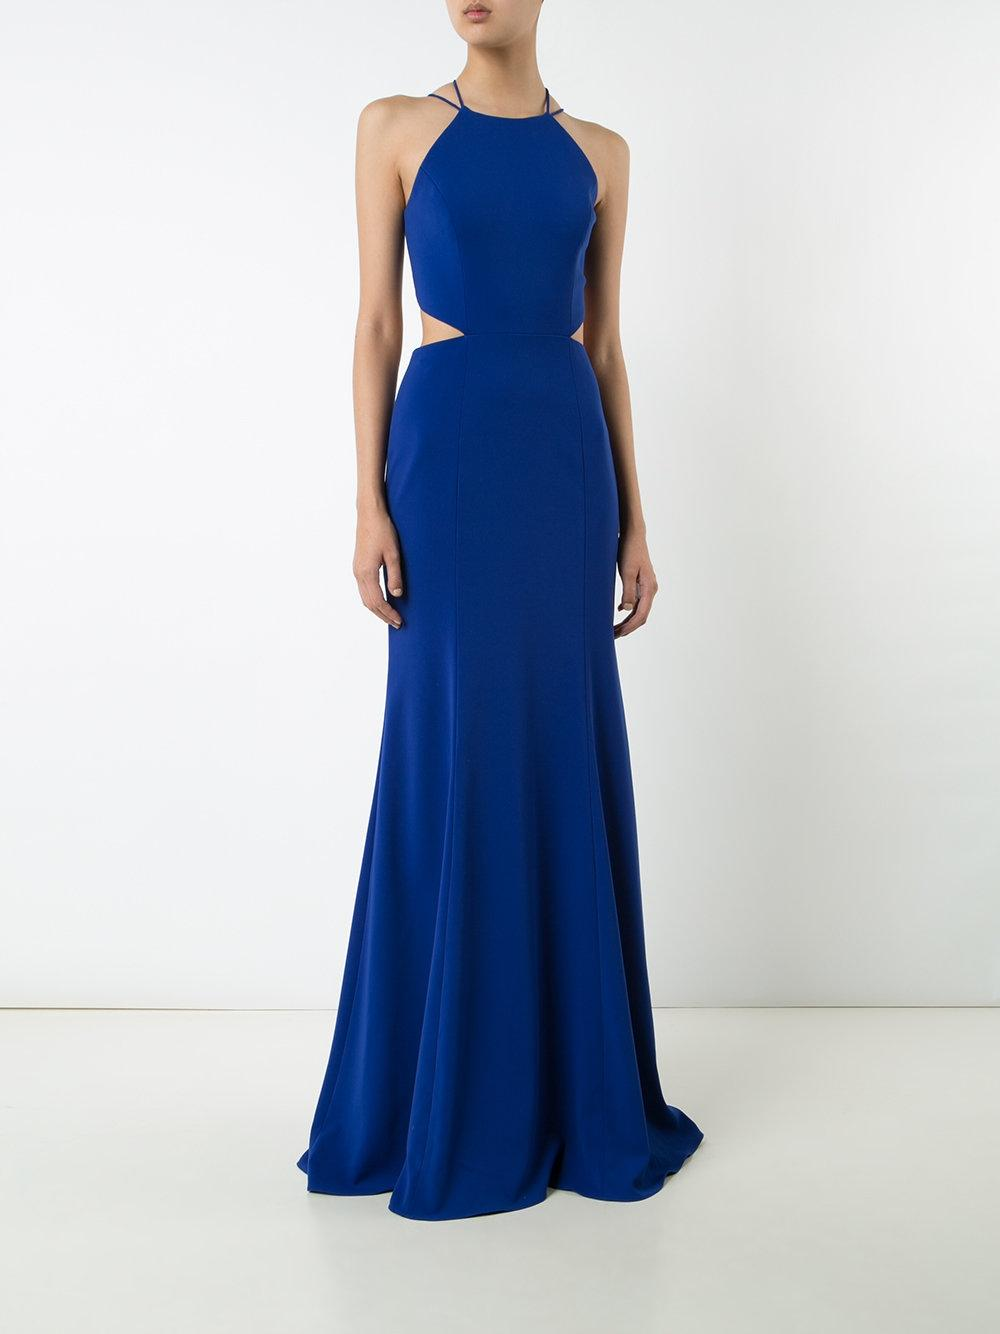 Marchesa Notte Woman Tasseled Embellished Stretch-cady Gown Royal Blue Size 16 Marchesa Cheap Exclusive WsP3ufVt